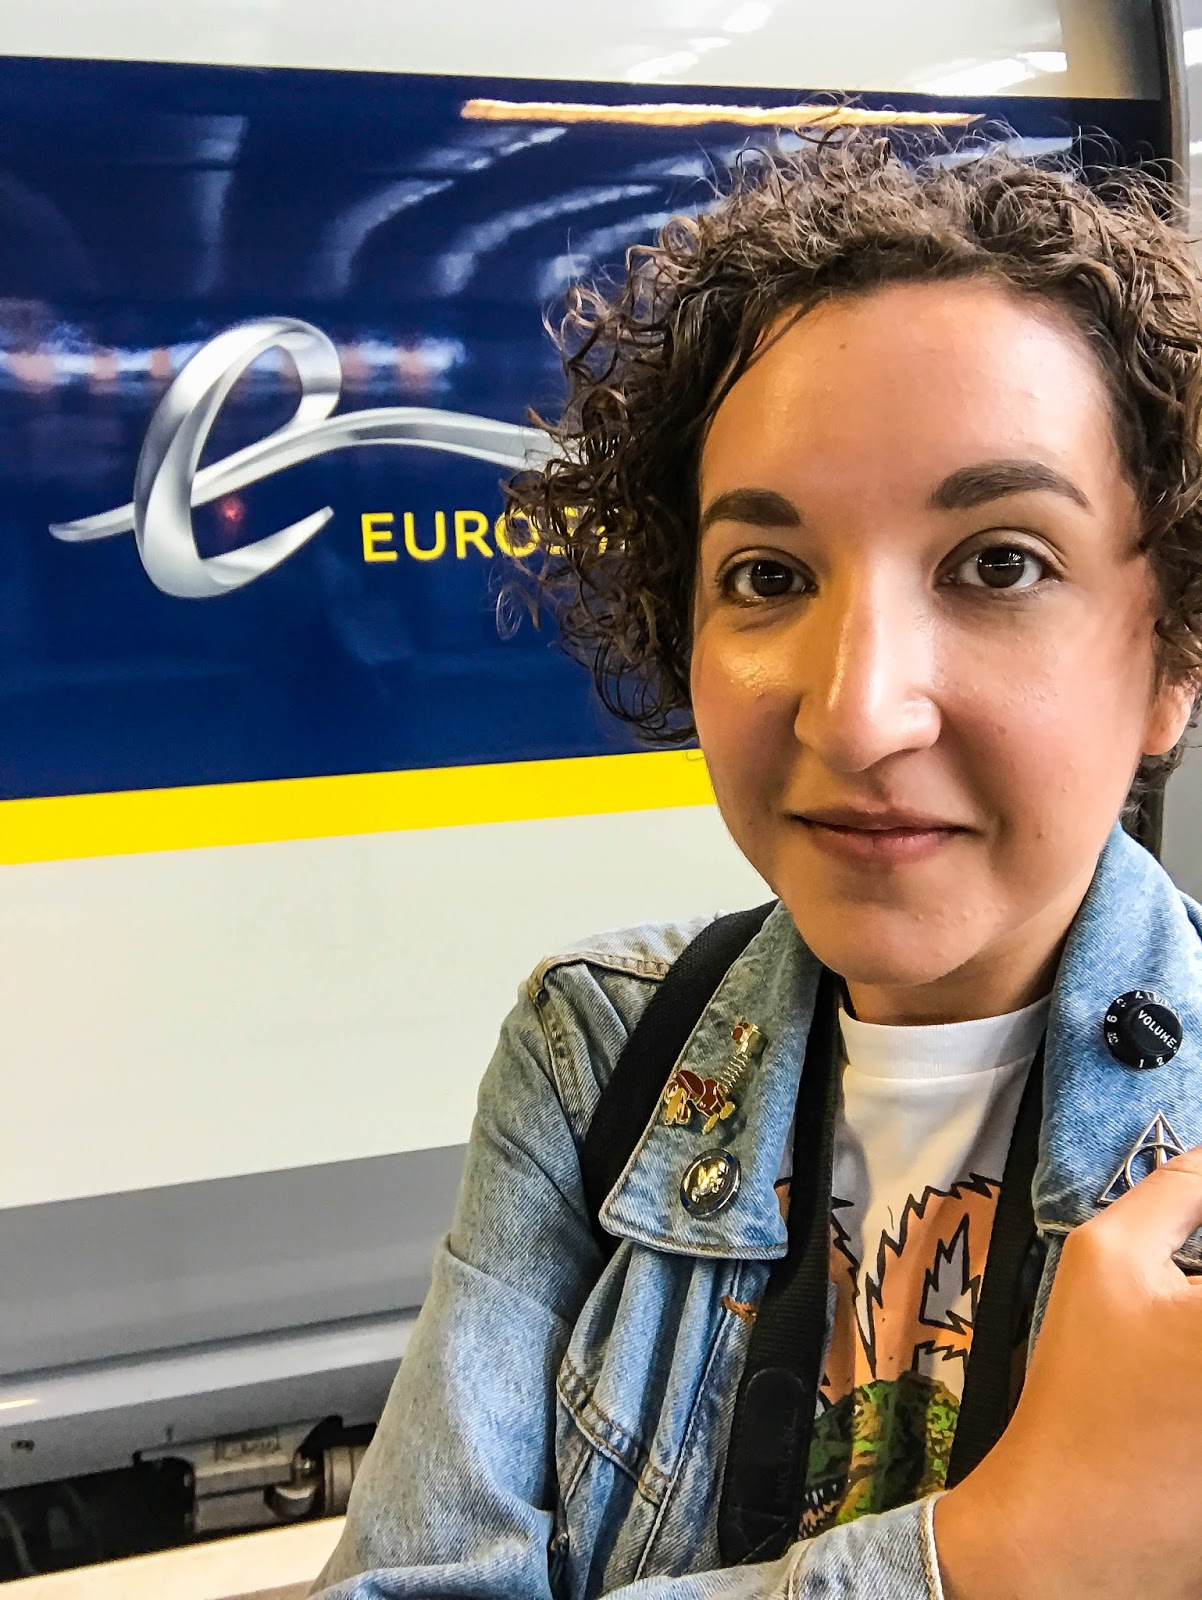 Travel blogger on Eurostar